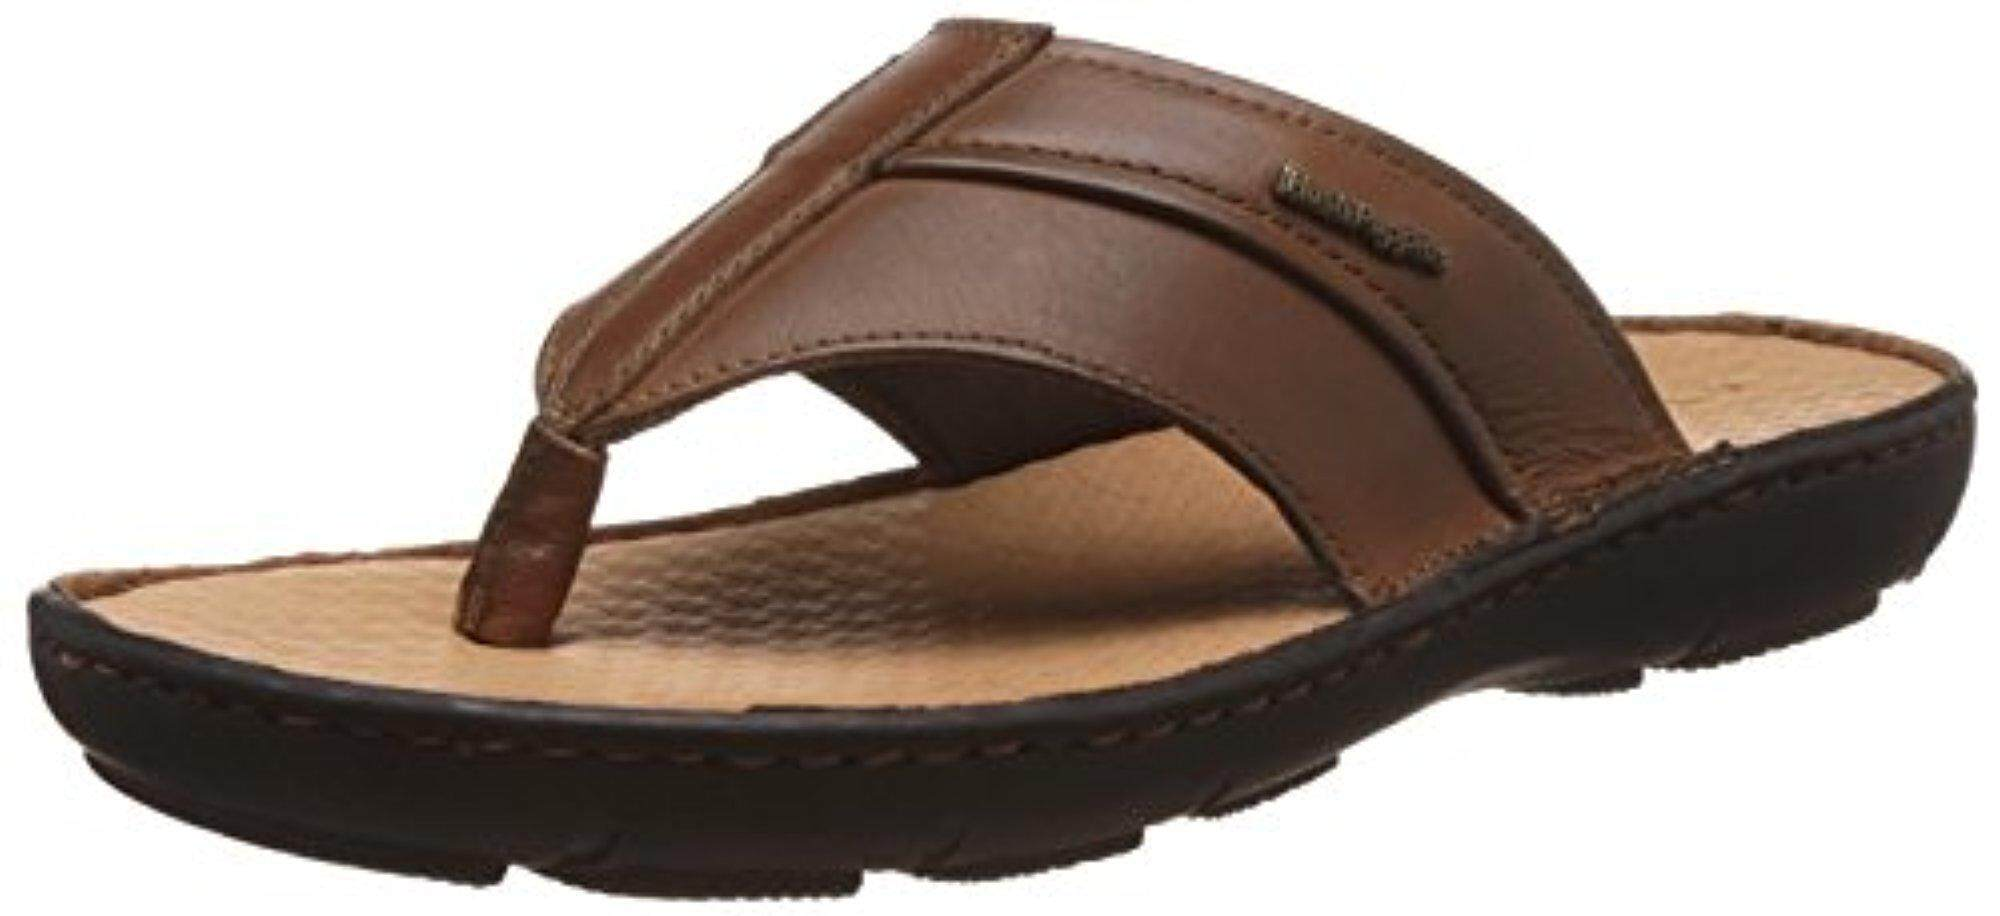 e523f35d31 Hush Puppies Men s Track Tan light brown Leather Athletic   Outdoor Sandals  - 7 UK